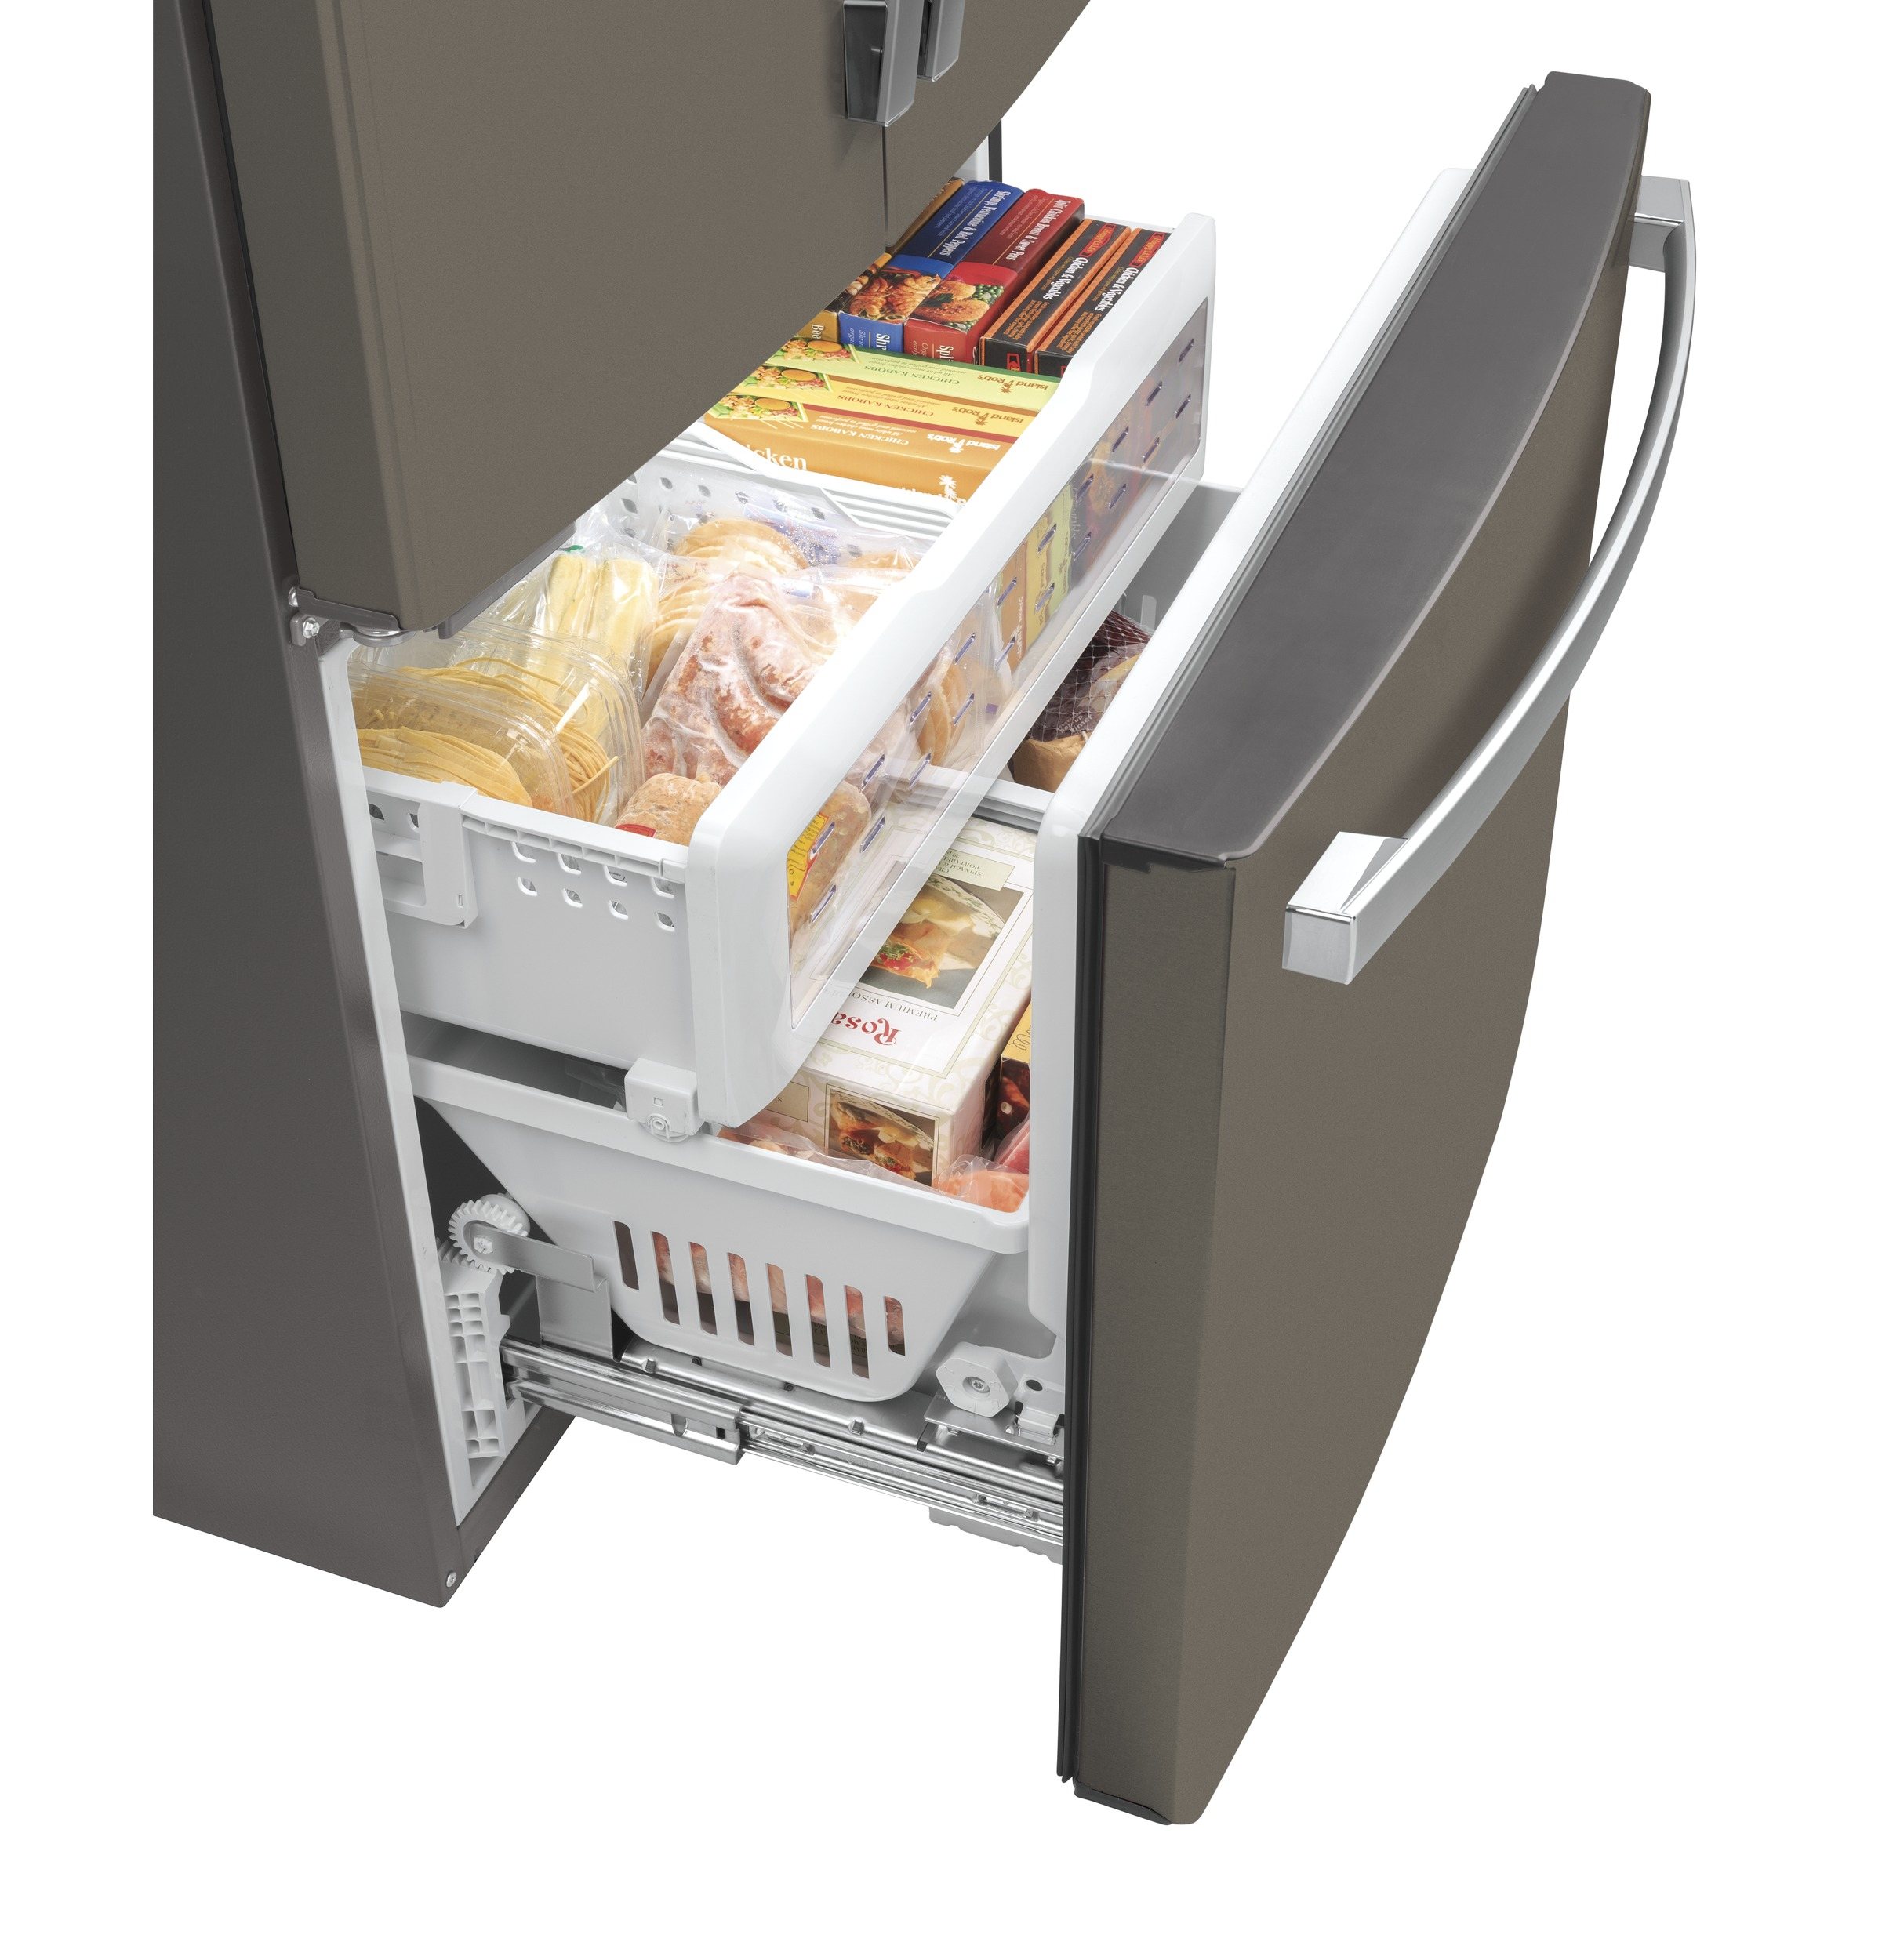 Model: GWE23GMNES | GE GE® ENERGY STAR® 23.1 Cu. Ft. Counter-Depth French-Door Refrigerator